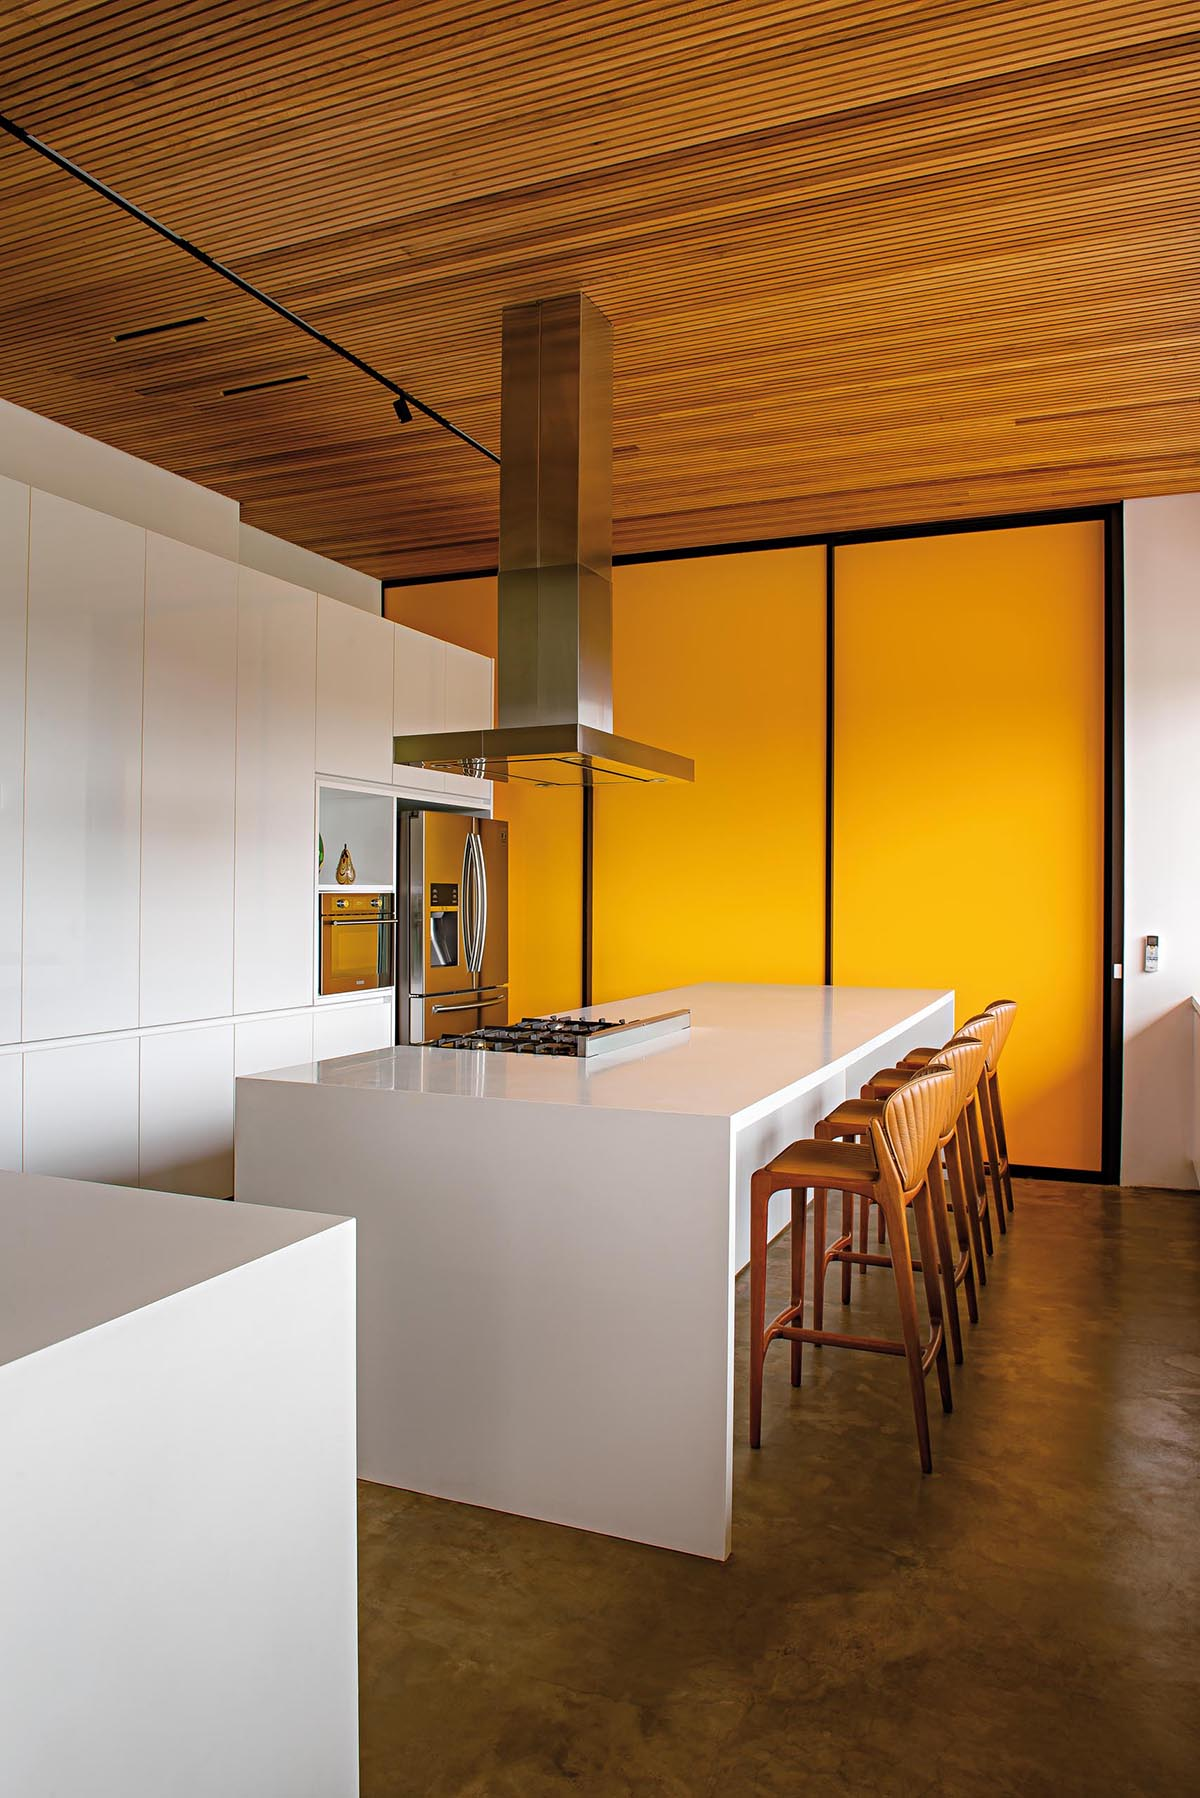 This modern kitchen has minimalist hardware-free white cabinets and island. A bright yellow accent wall creates a bold and colorful statement.